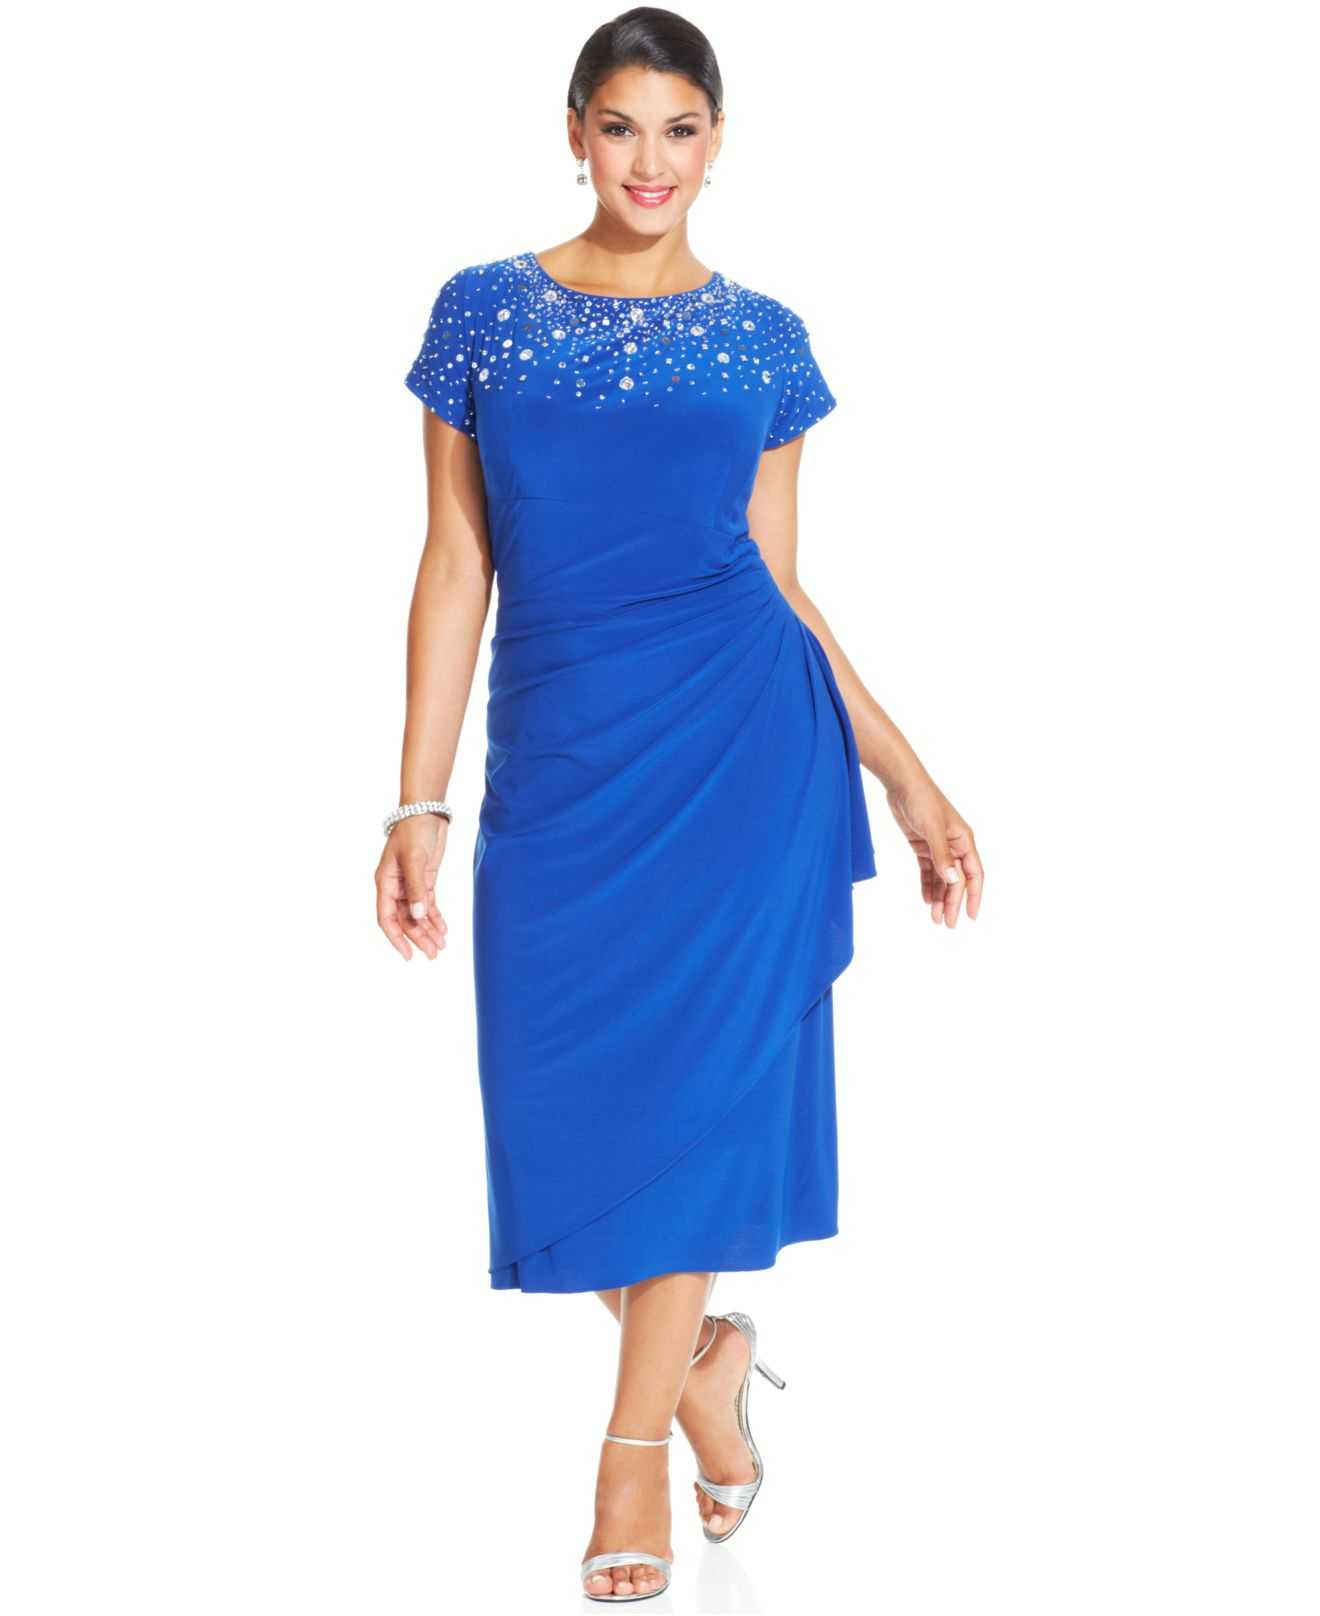 Lyst - Alex evenings Plus Size Beaded Tiered Dress in Blue